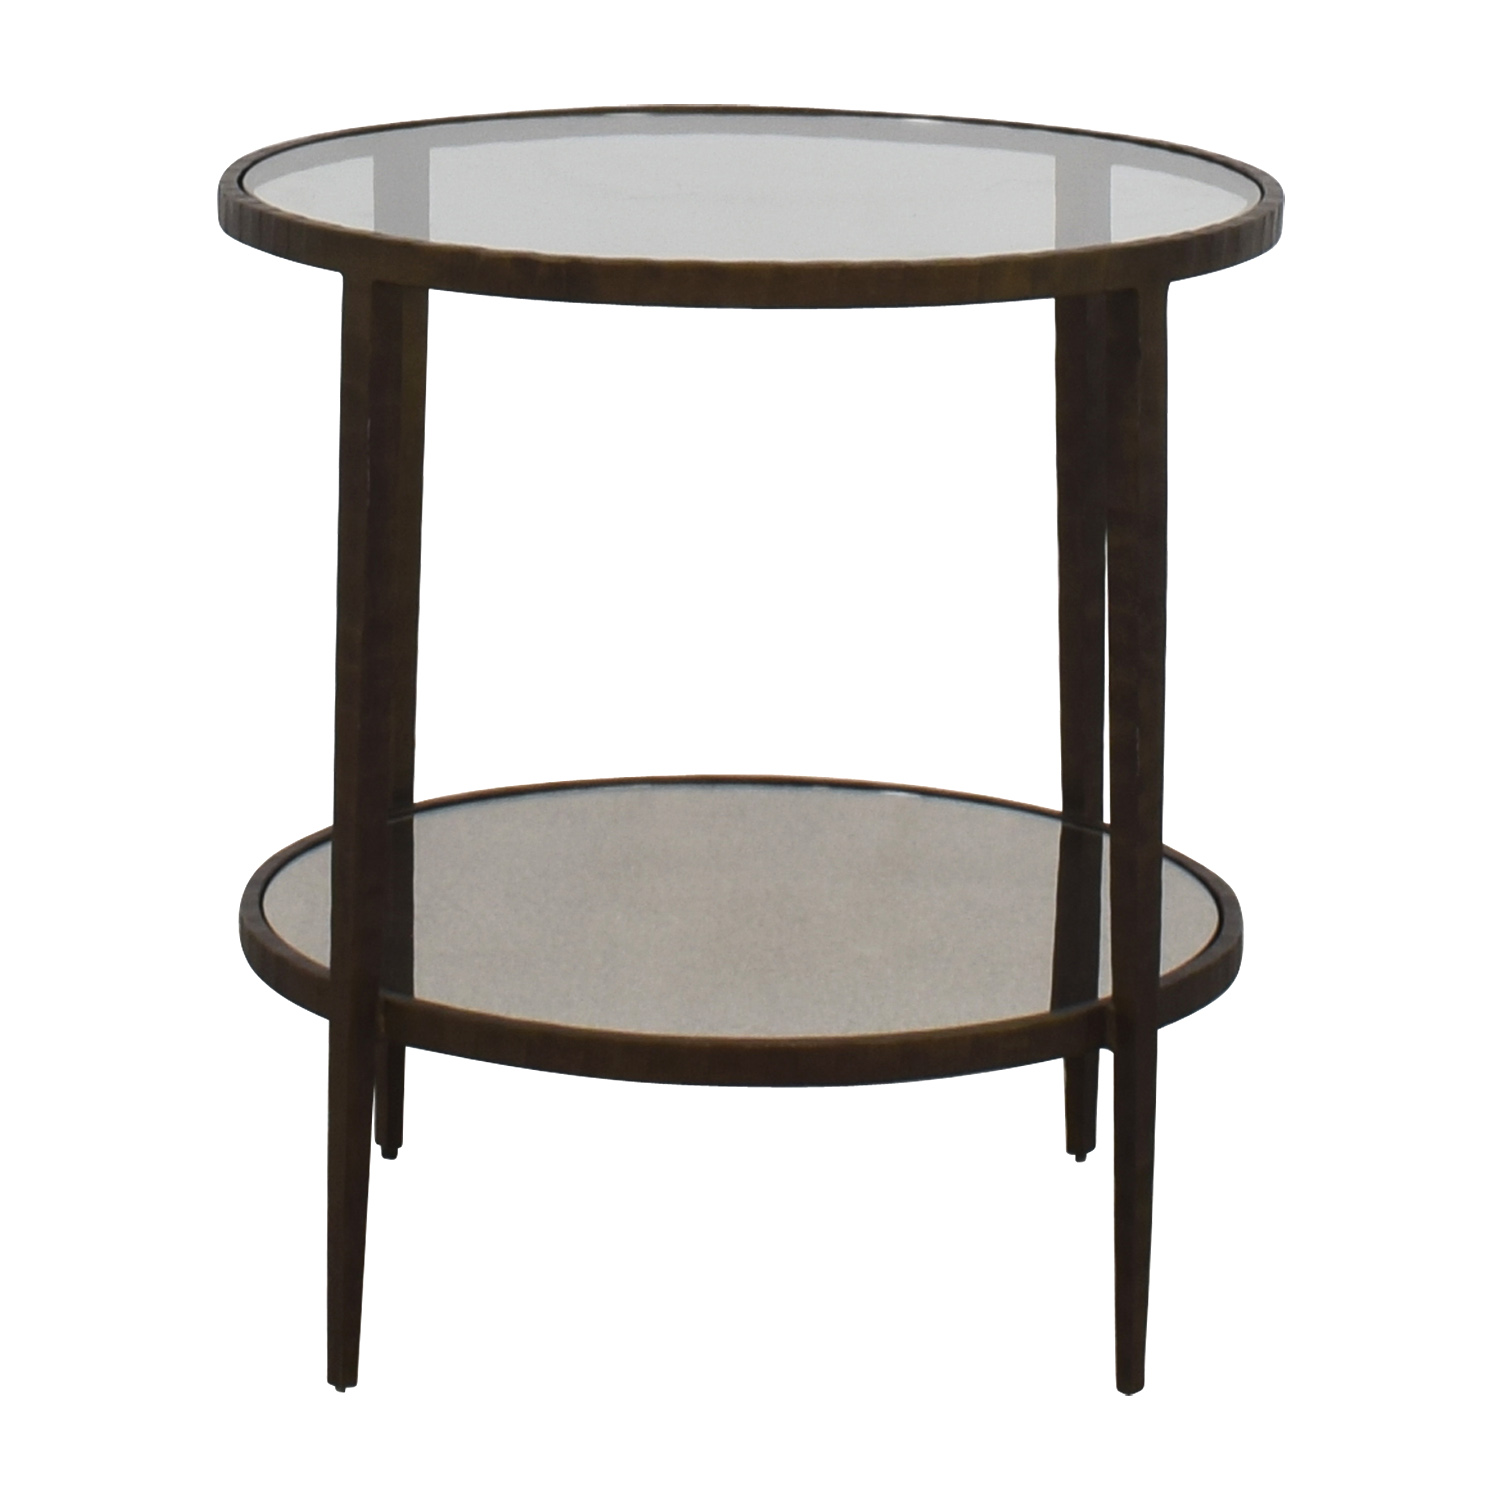 75 Off Crate Barrel Claremont Round Gl And Mirrored Side Table Tables